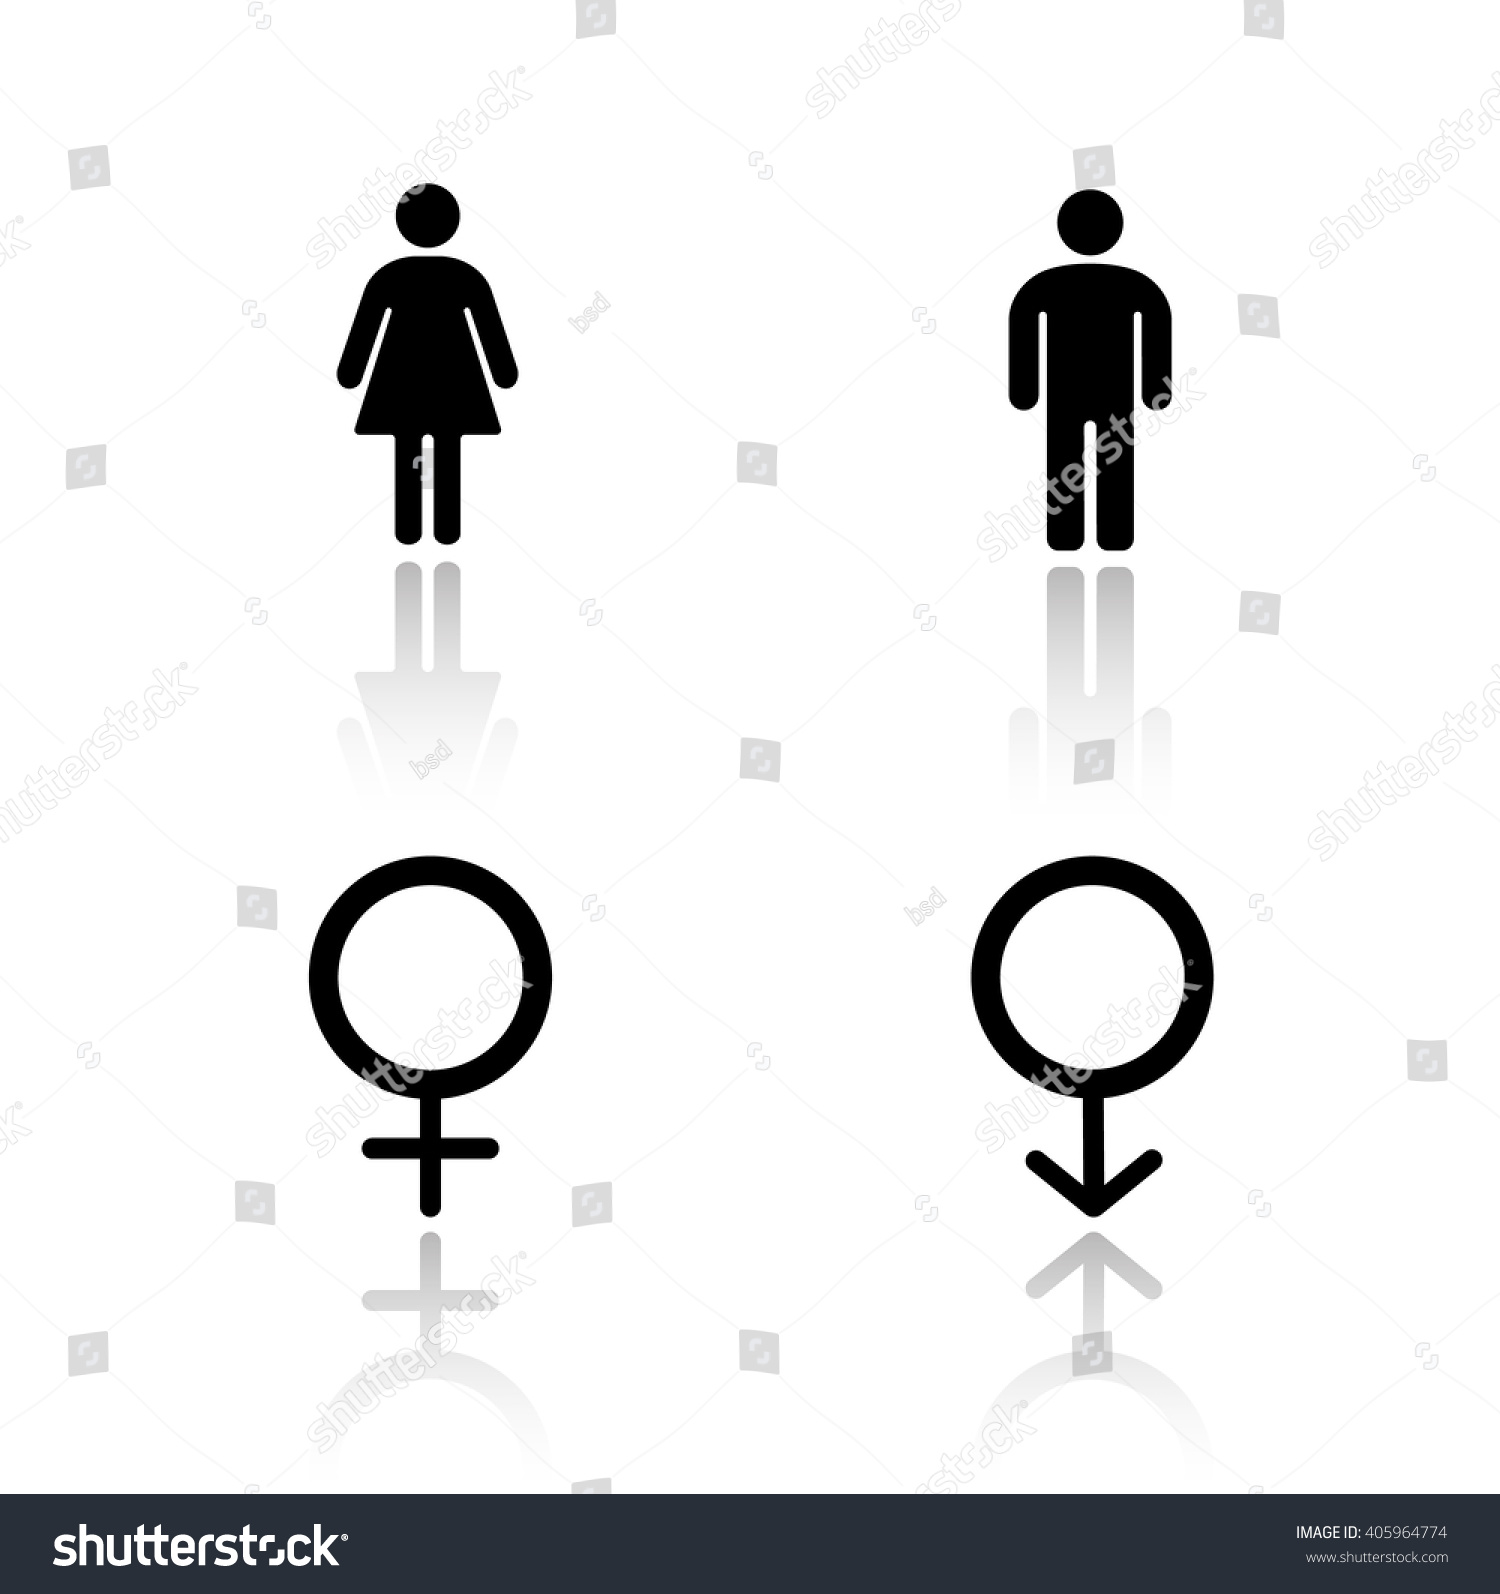 Male bathroom sign - Man And Woman Silhouettes Drop Shadow Icons Set Wc Entrance Gender Symbols Male And Man